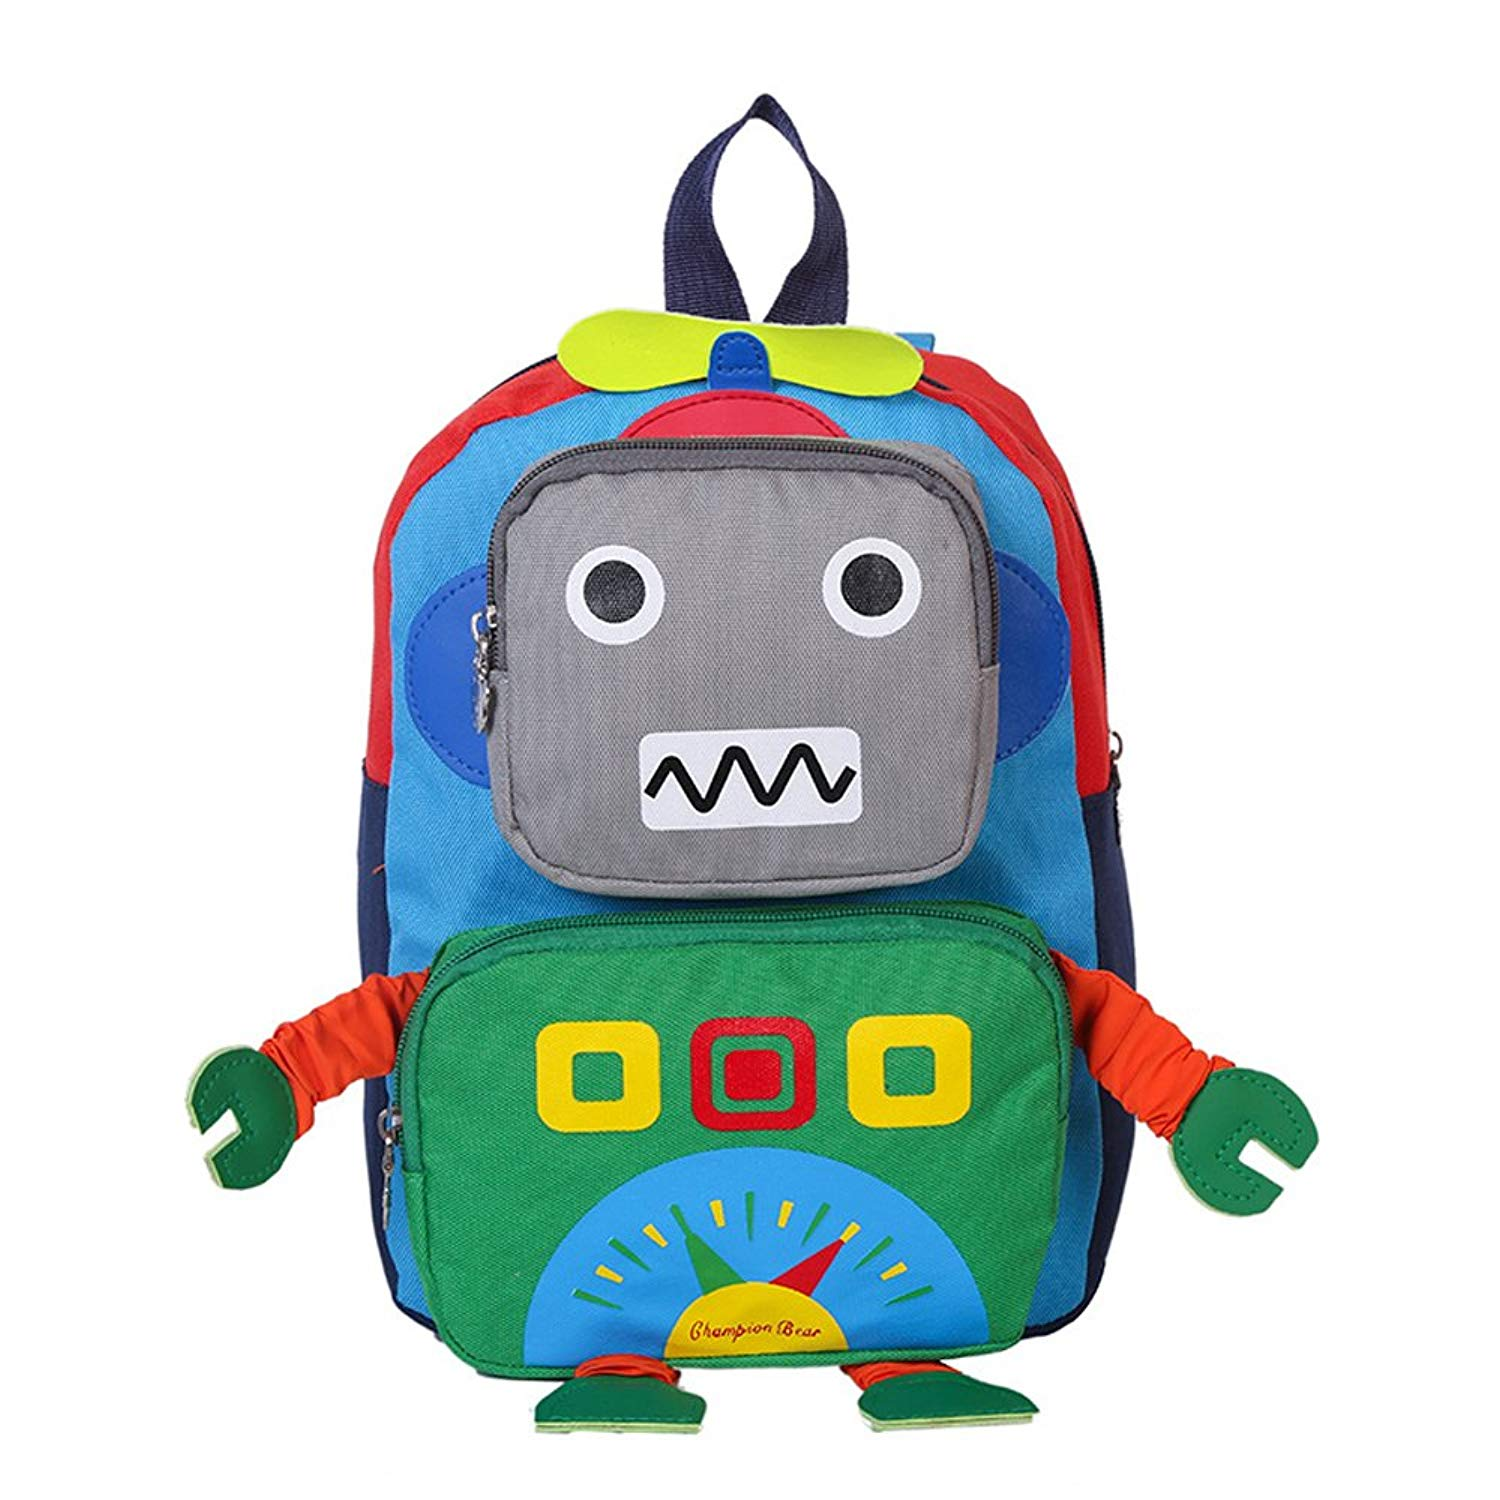 c855b8855d Get Quotations · Kids Backpack Preschool Toddler Backpack 3D Robot Children  Backpacks